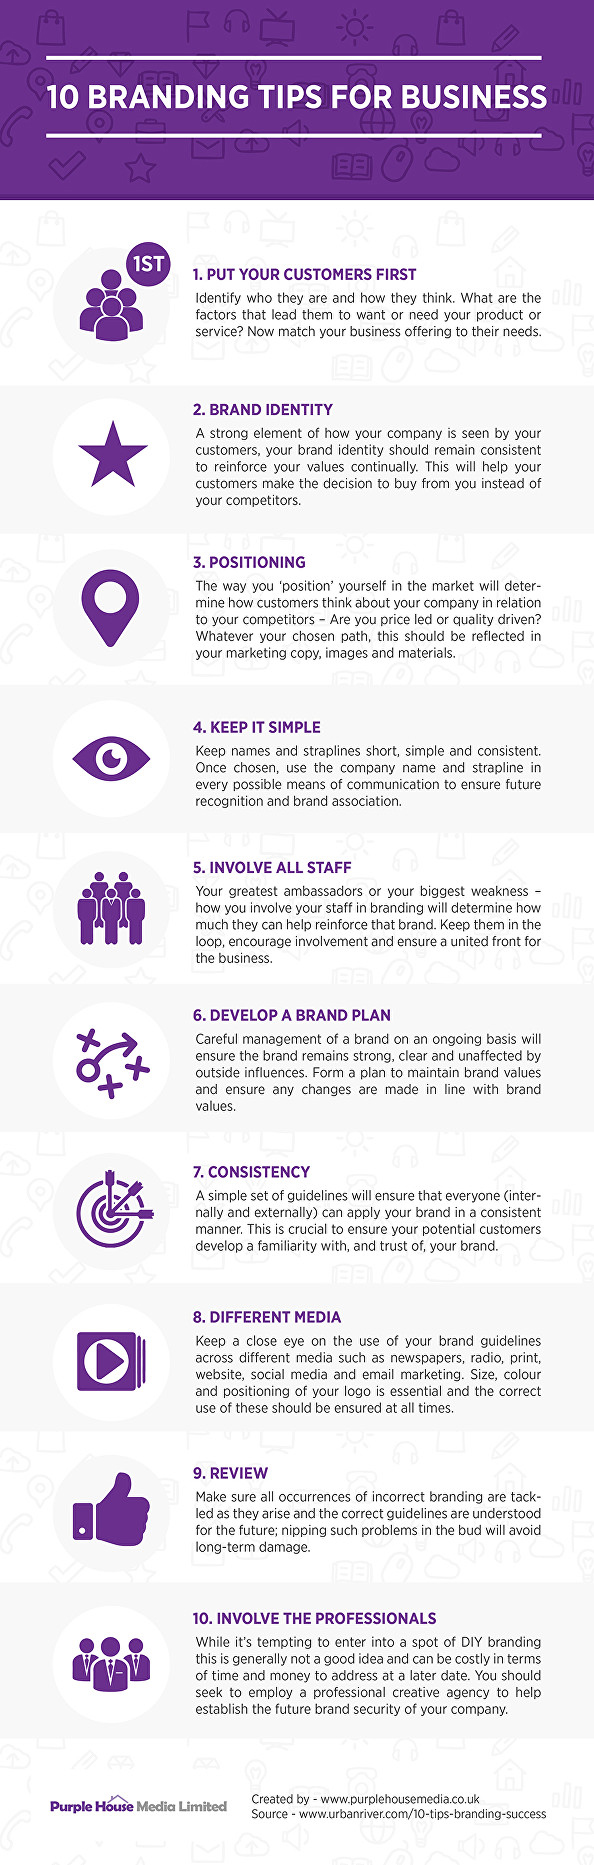 Starting a New Business 10 Branding Tips for Success